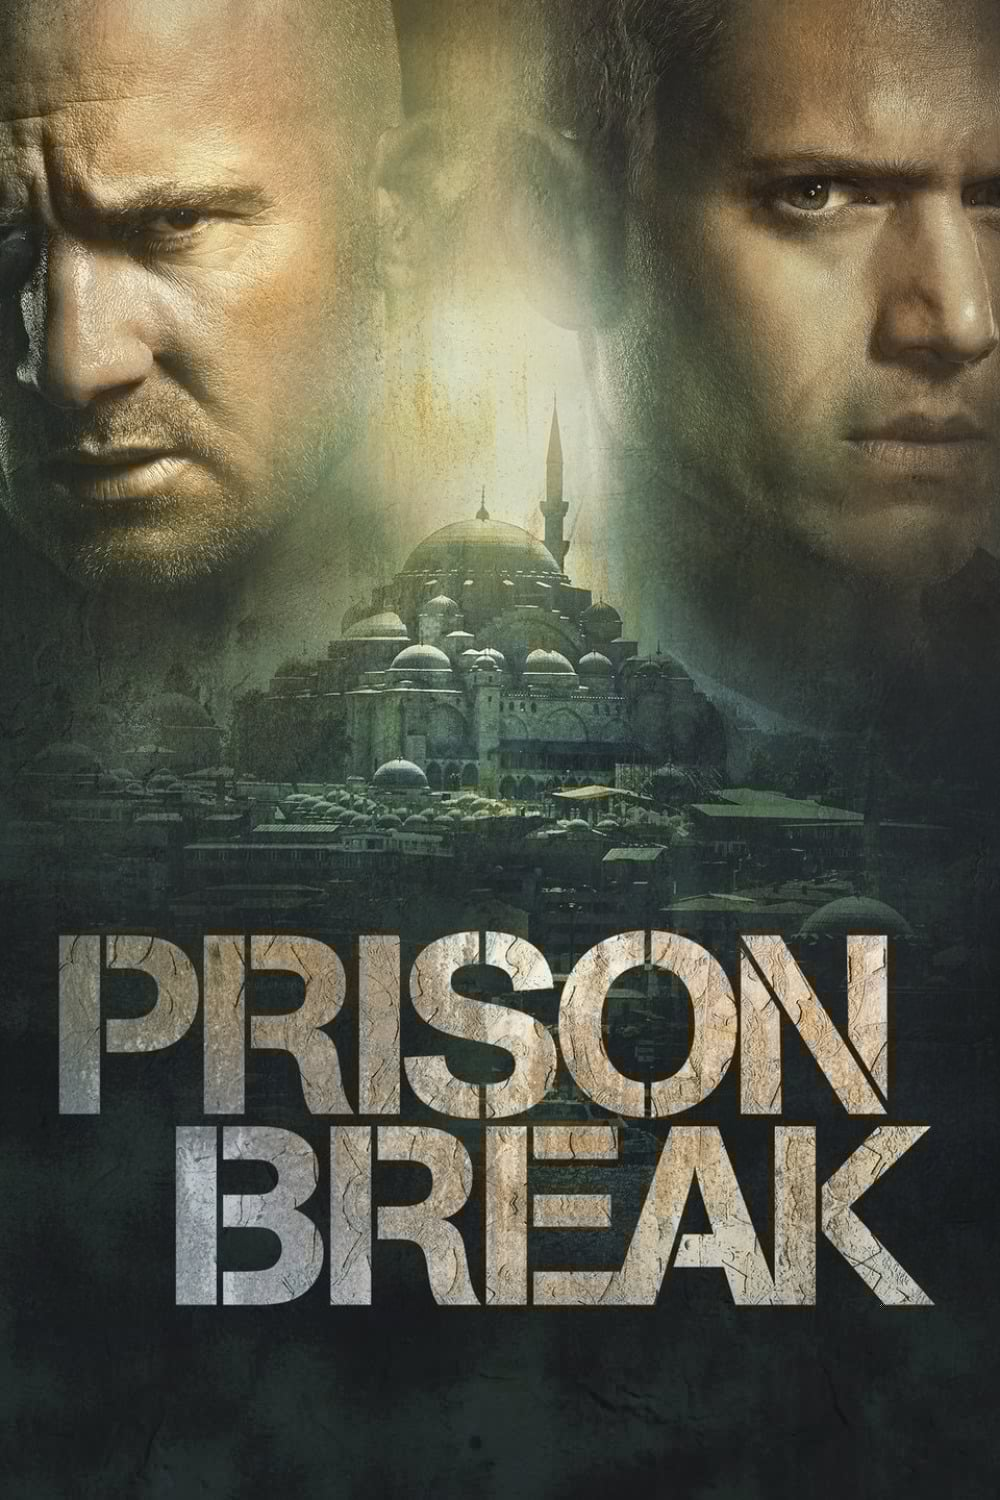 Burning Serie Prison Break